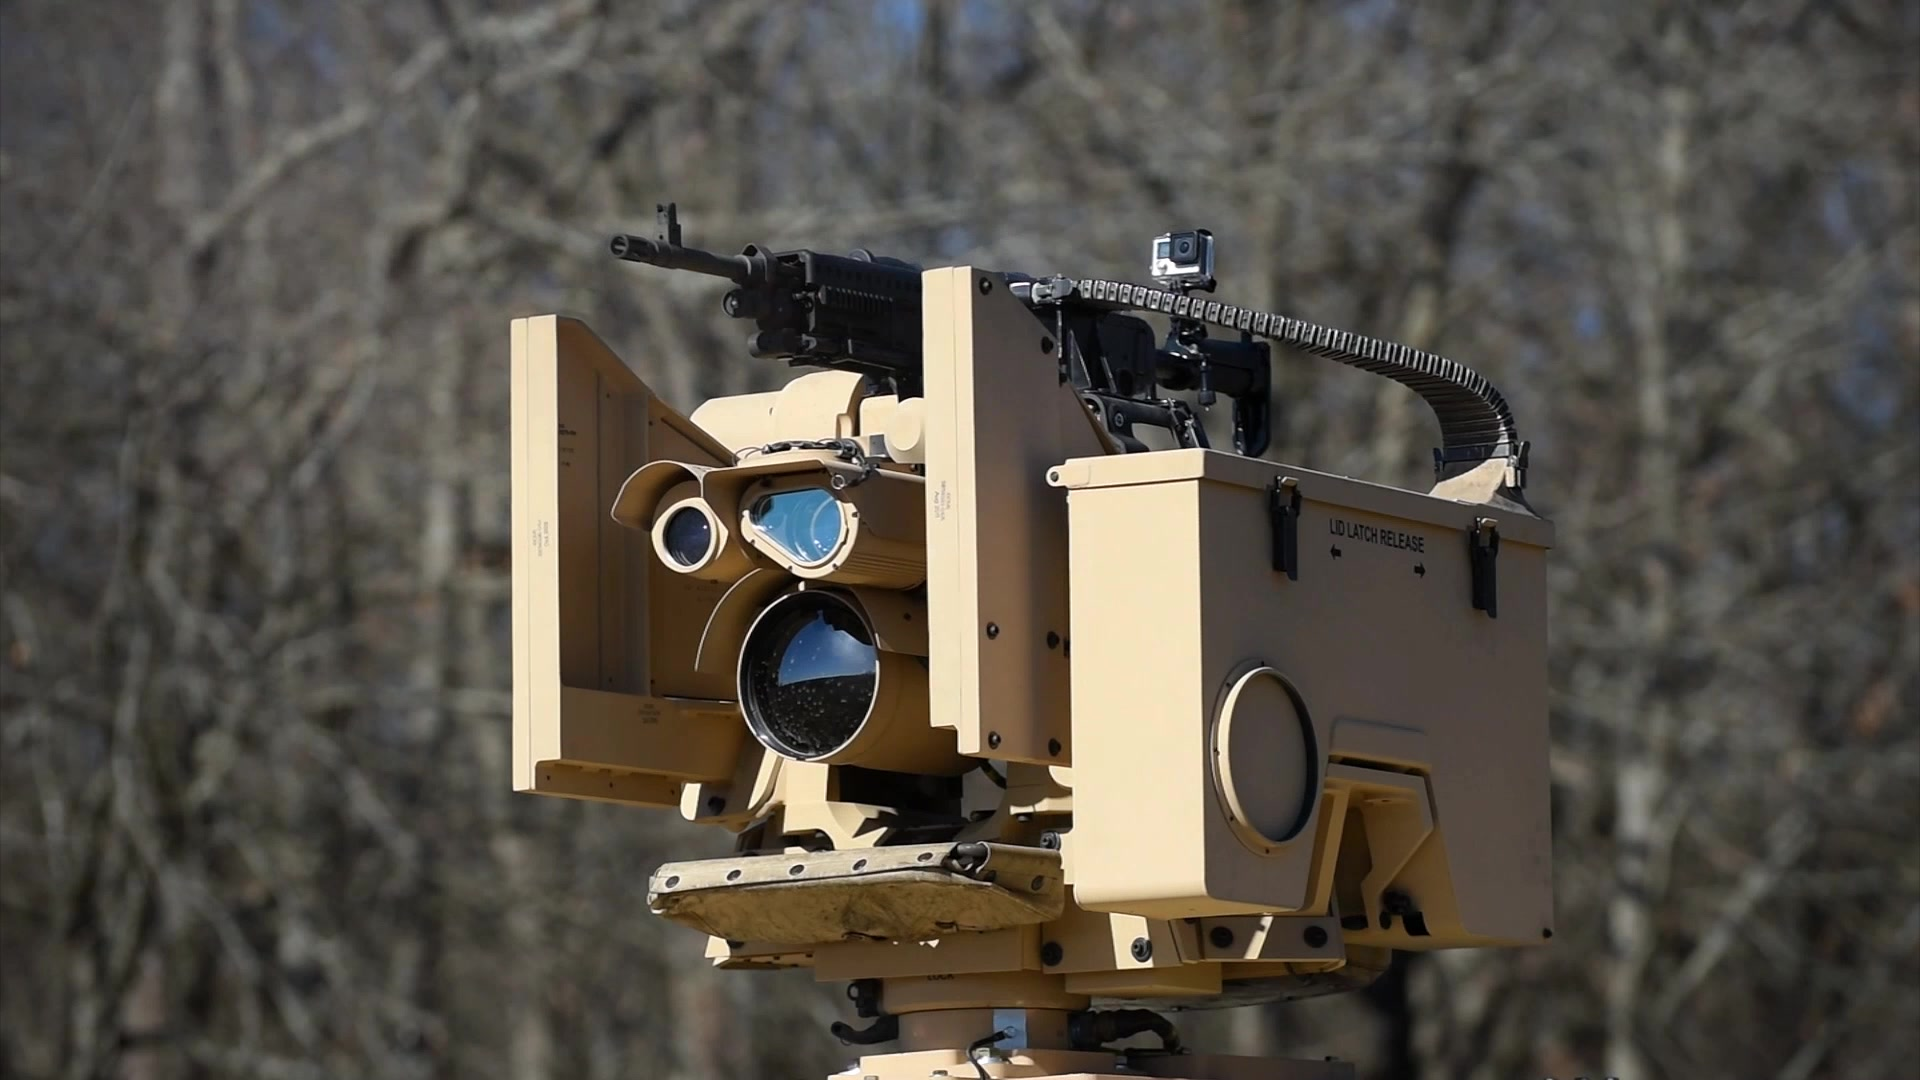 The U.S. Army Reserve is receiving a weapon technology known as the CROWS, allowing the gunner to sit safely in the back seat. The CROWS stands for Common Remotely Operated Weapon Station, mounted to the top of a vehicle, equipped with daytime and thermal cameras, able to rotate 360 degrees, see up to 1,500 meters away, and compatible with four major crew weapon systems. In all, it's estimated that 27 companies will receive the units, 19 of which are military police. The project is estimated to field approximately $39 million worth of equipment to the Army Reserve.